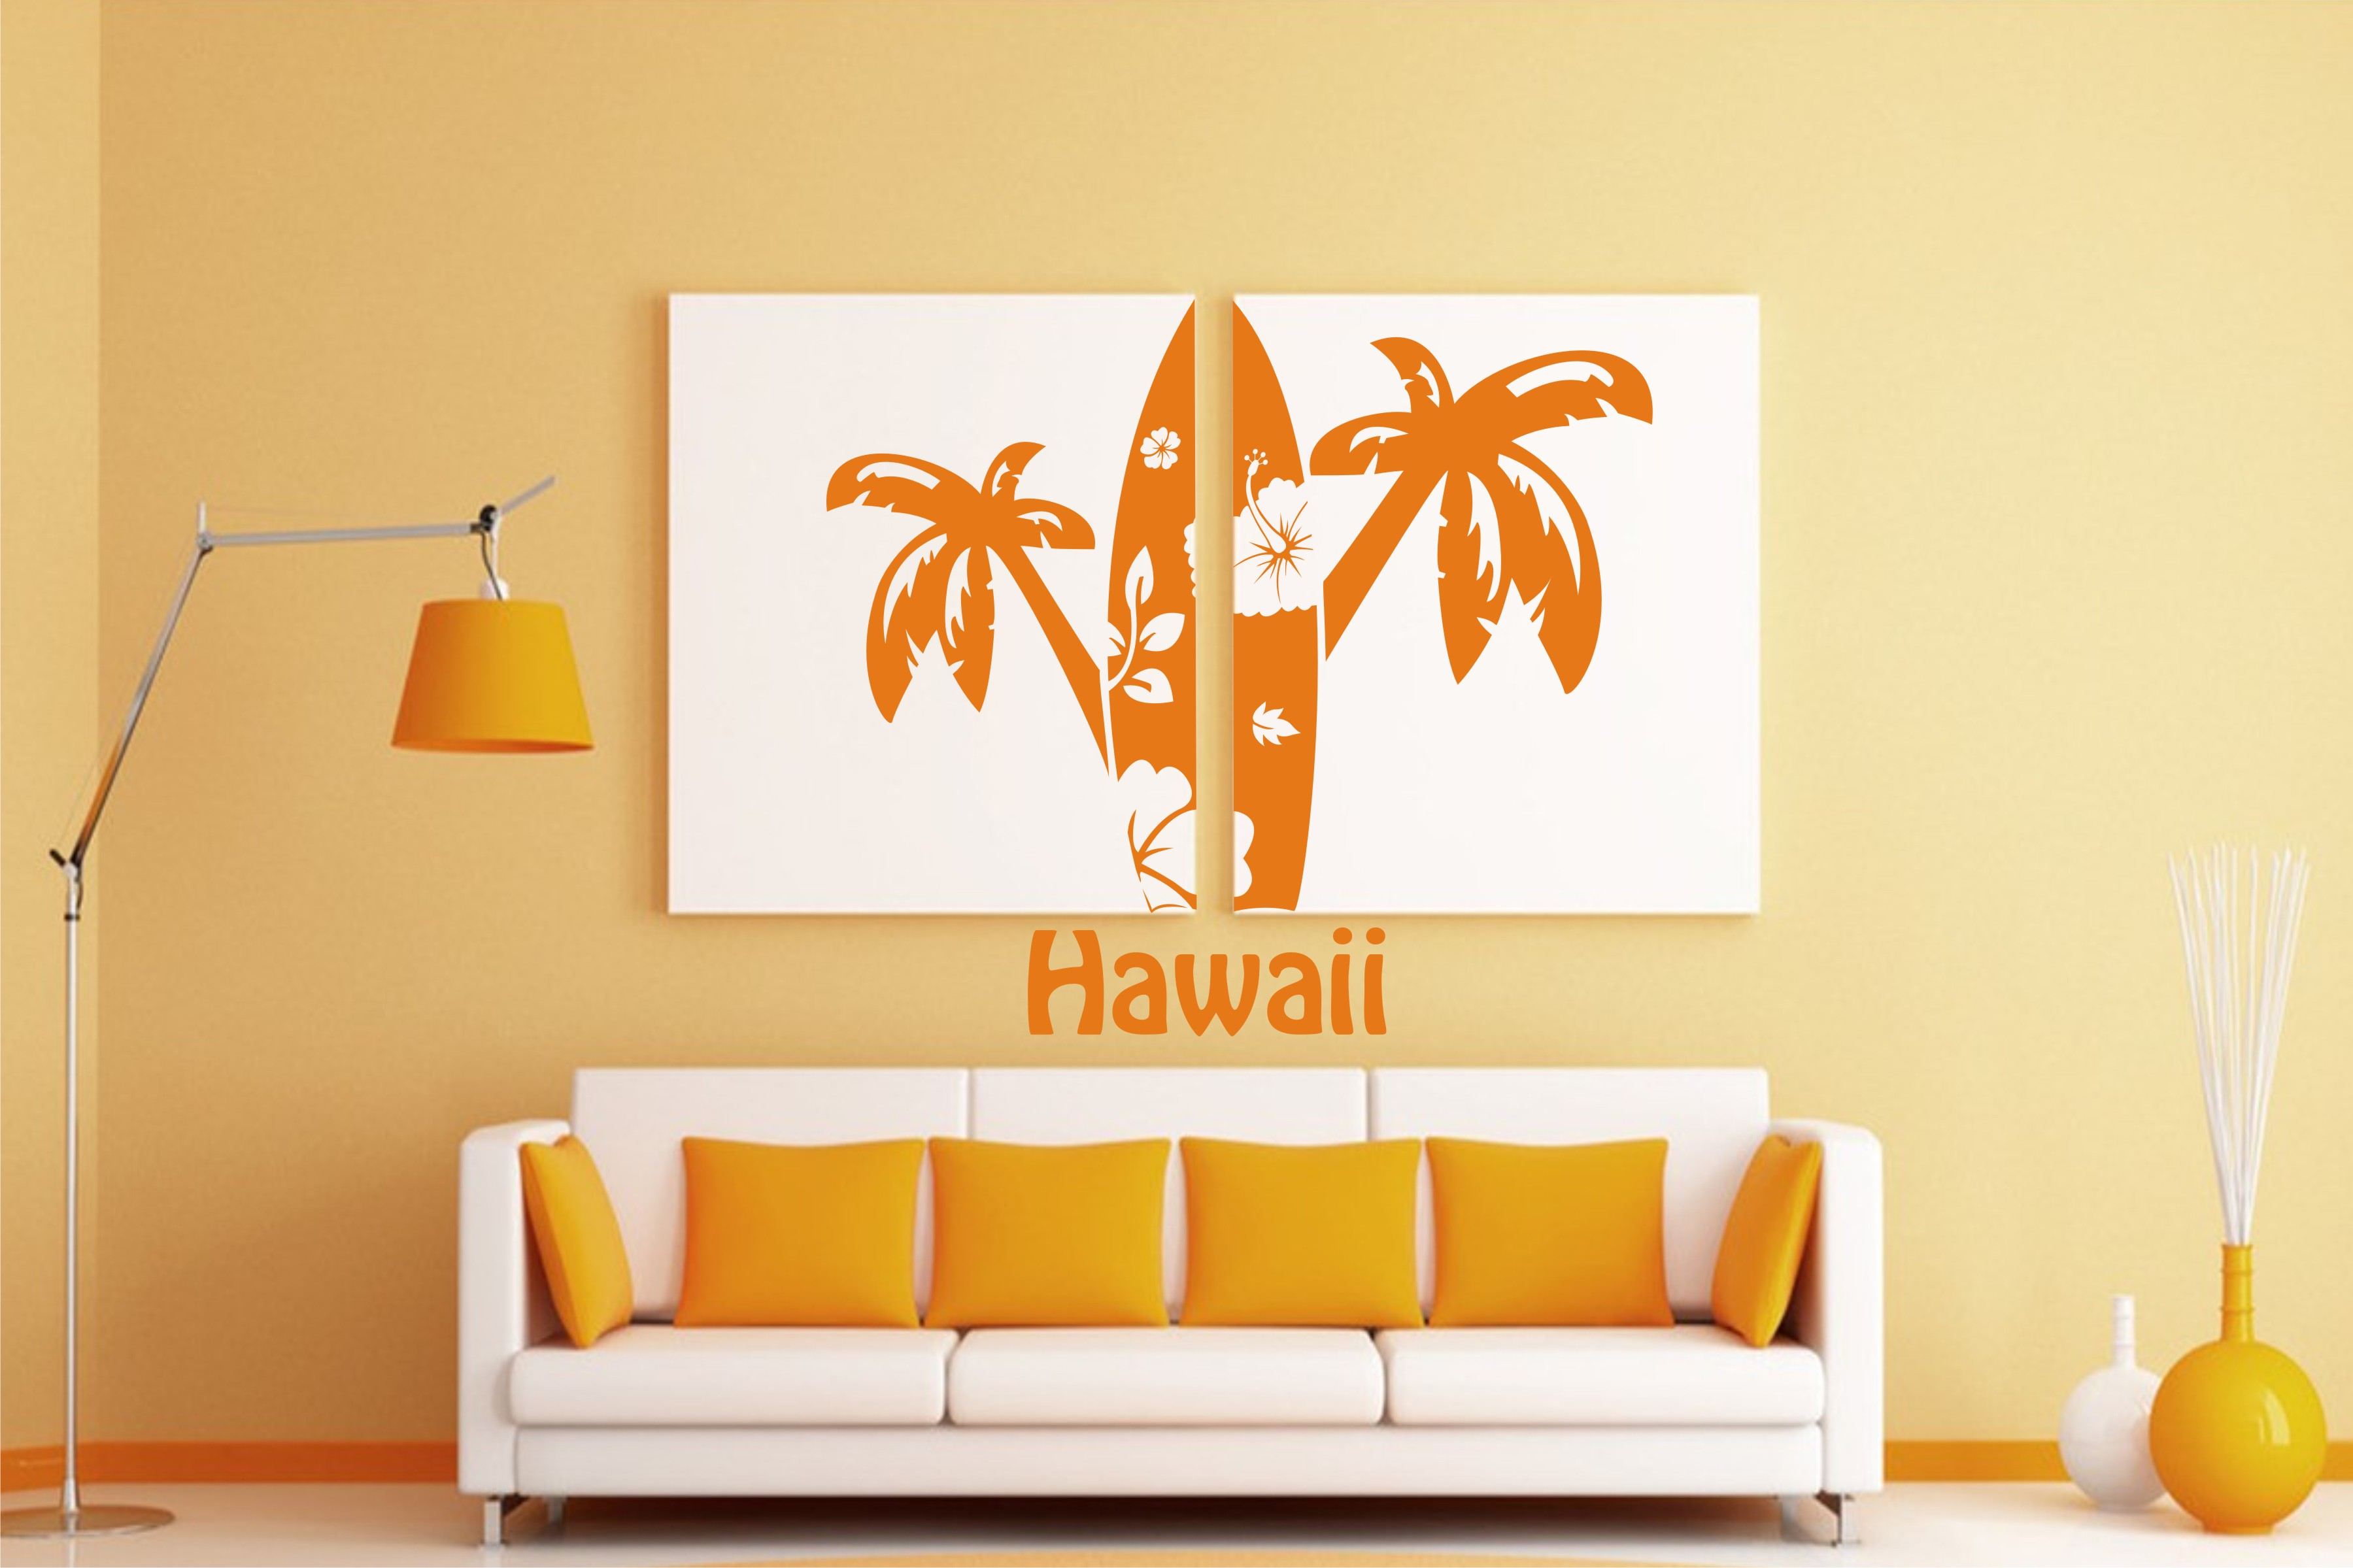 Hawaii-surf board